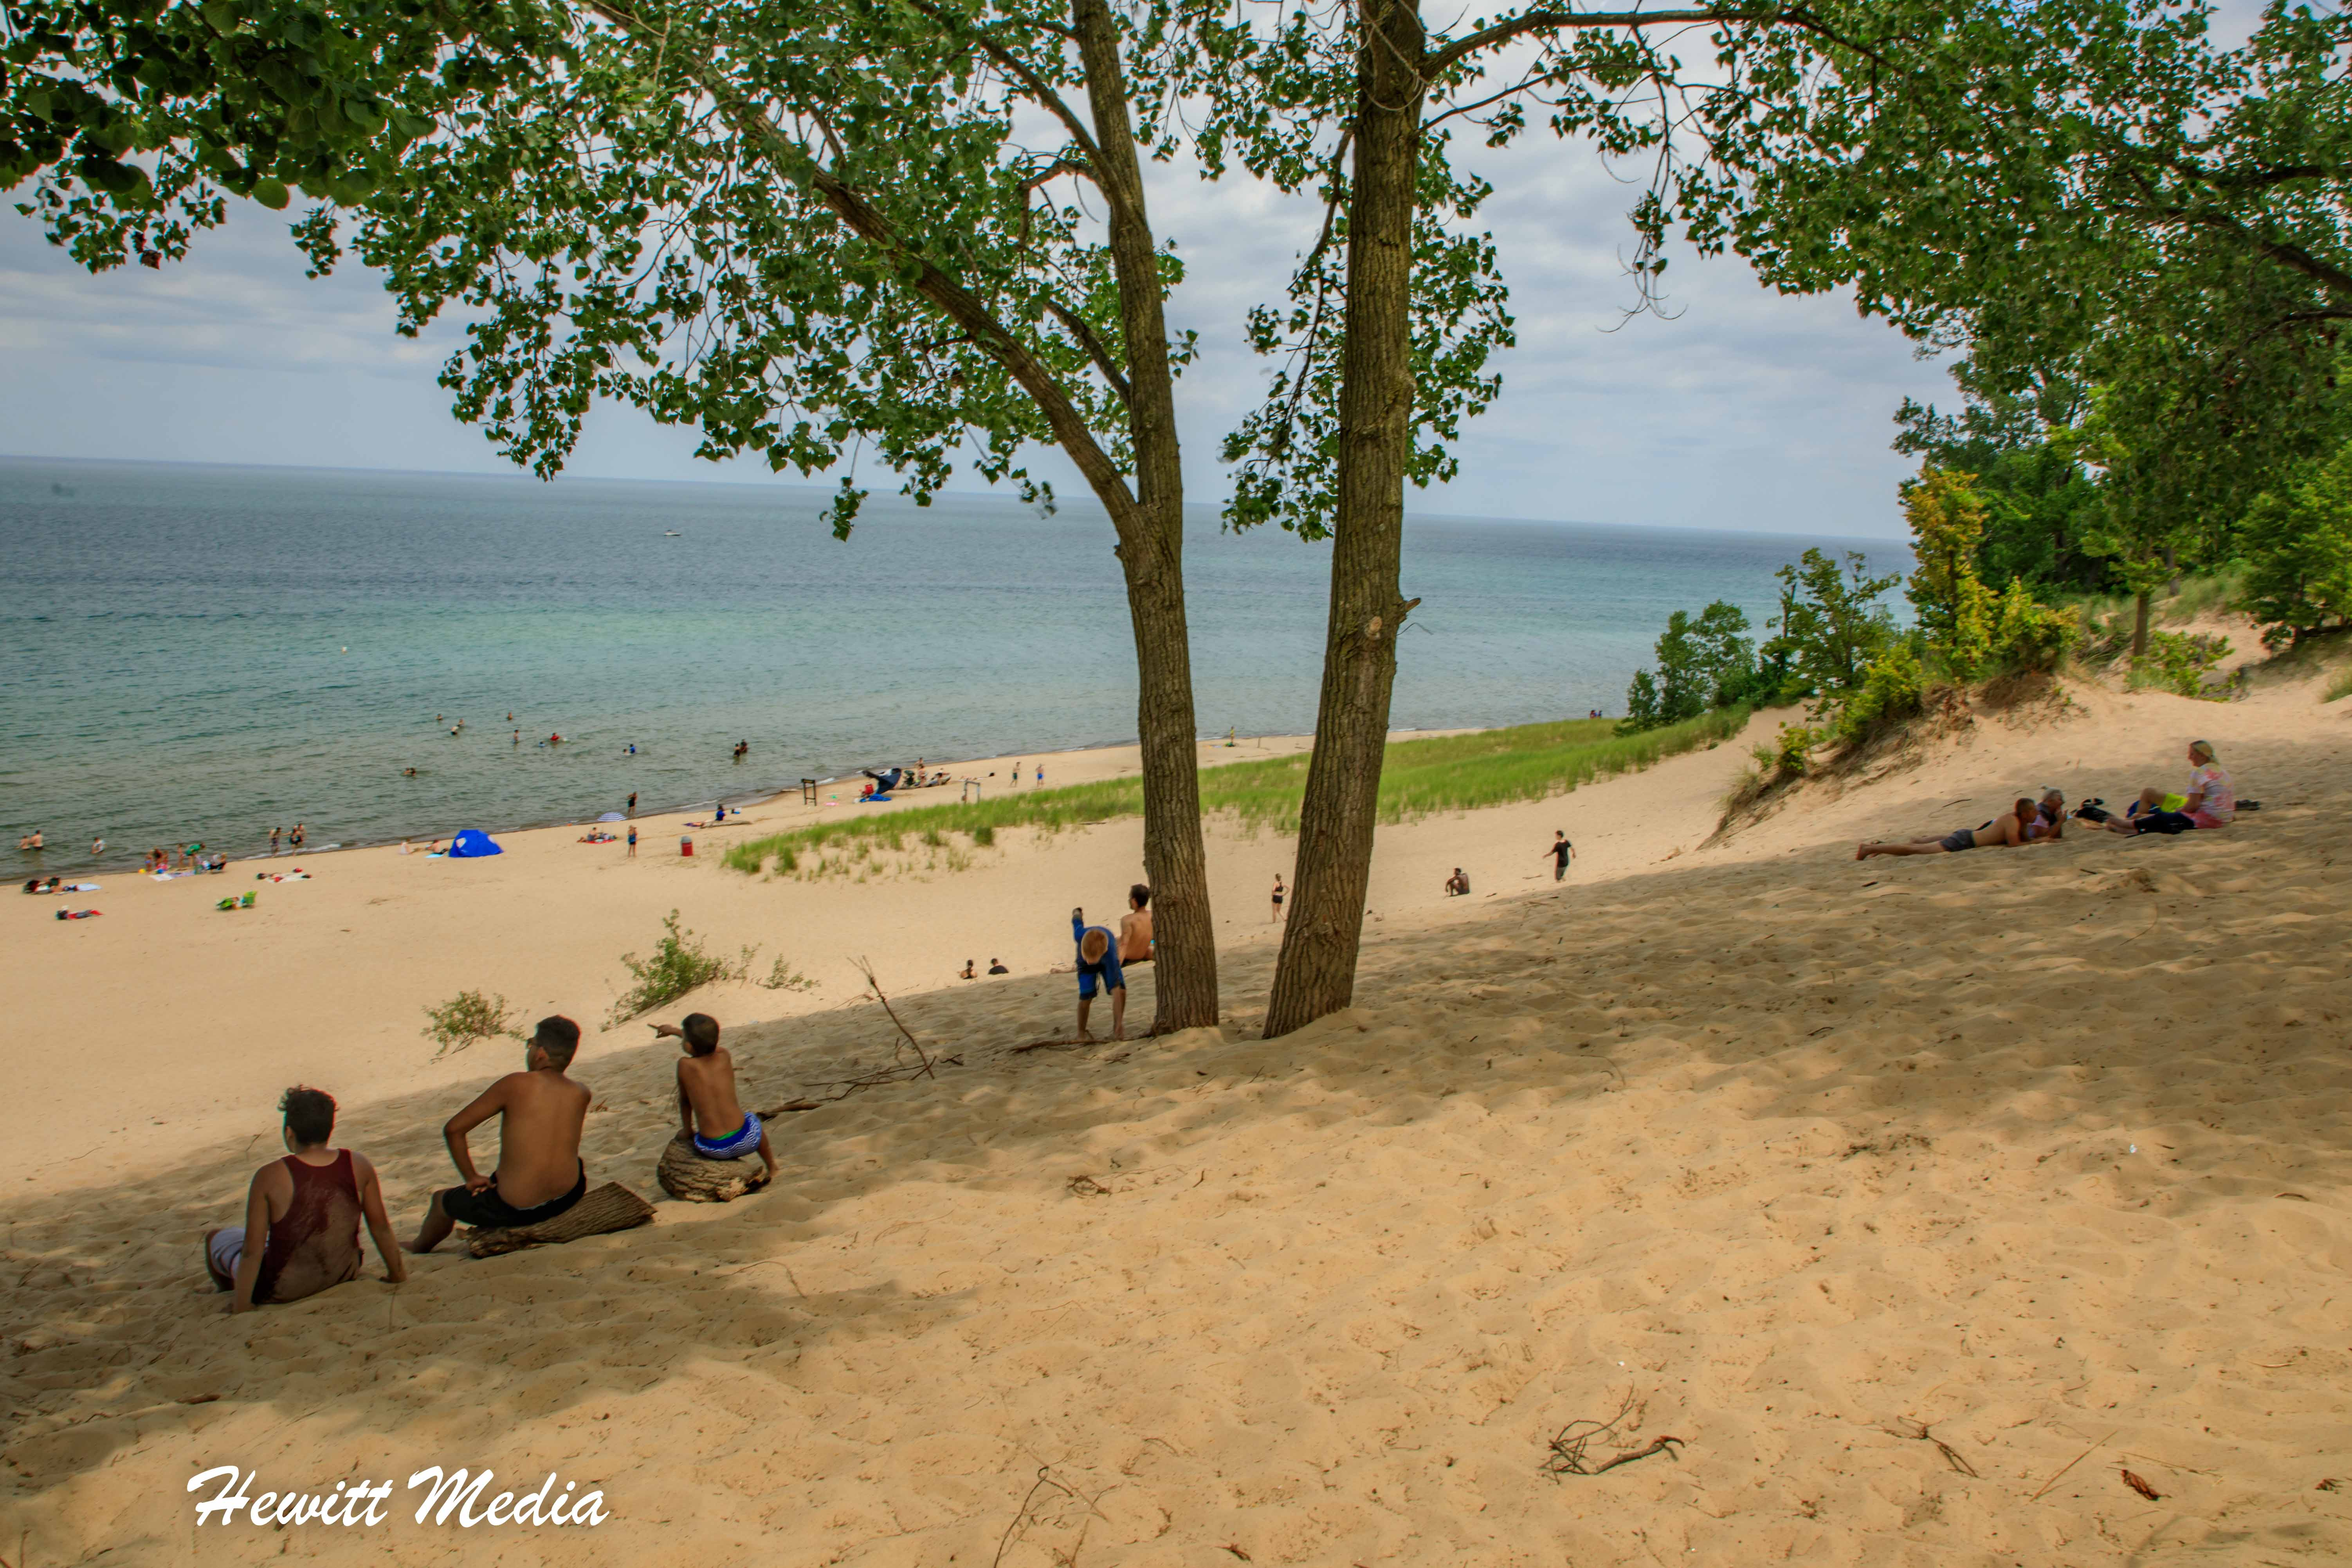 The dunes in Indiana Dunes State Park